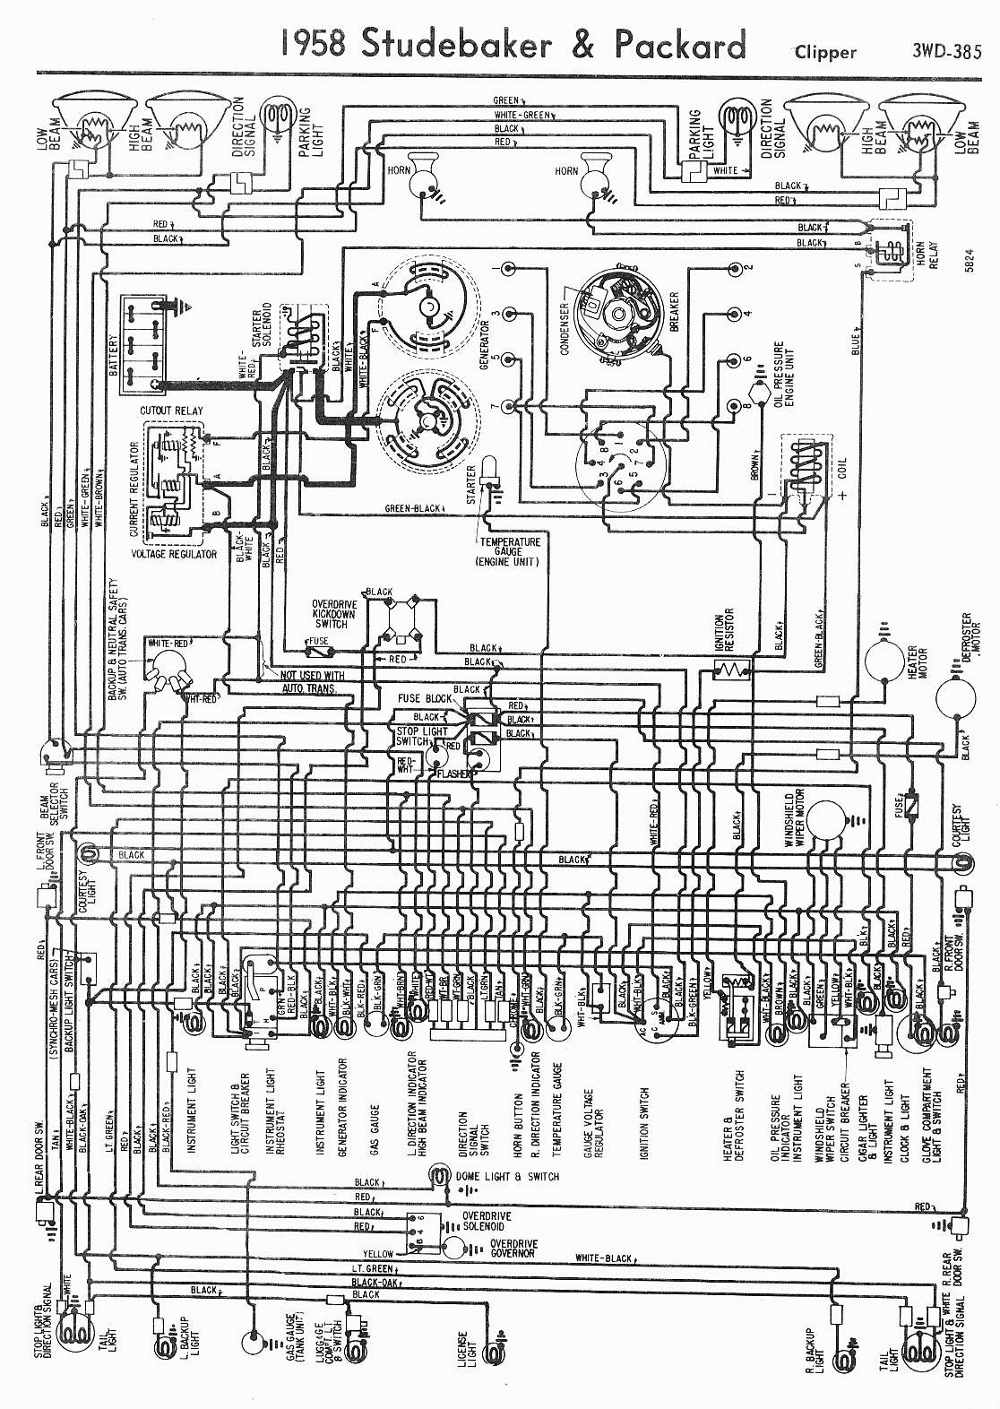 1951 mercury wiring diagram c0307 1950 packard wiring diagram wiring resources  c0307 1950 packard wiring diagram